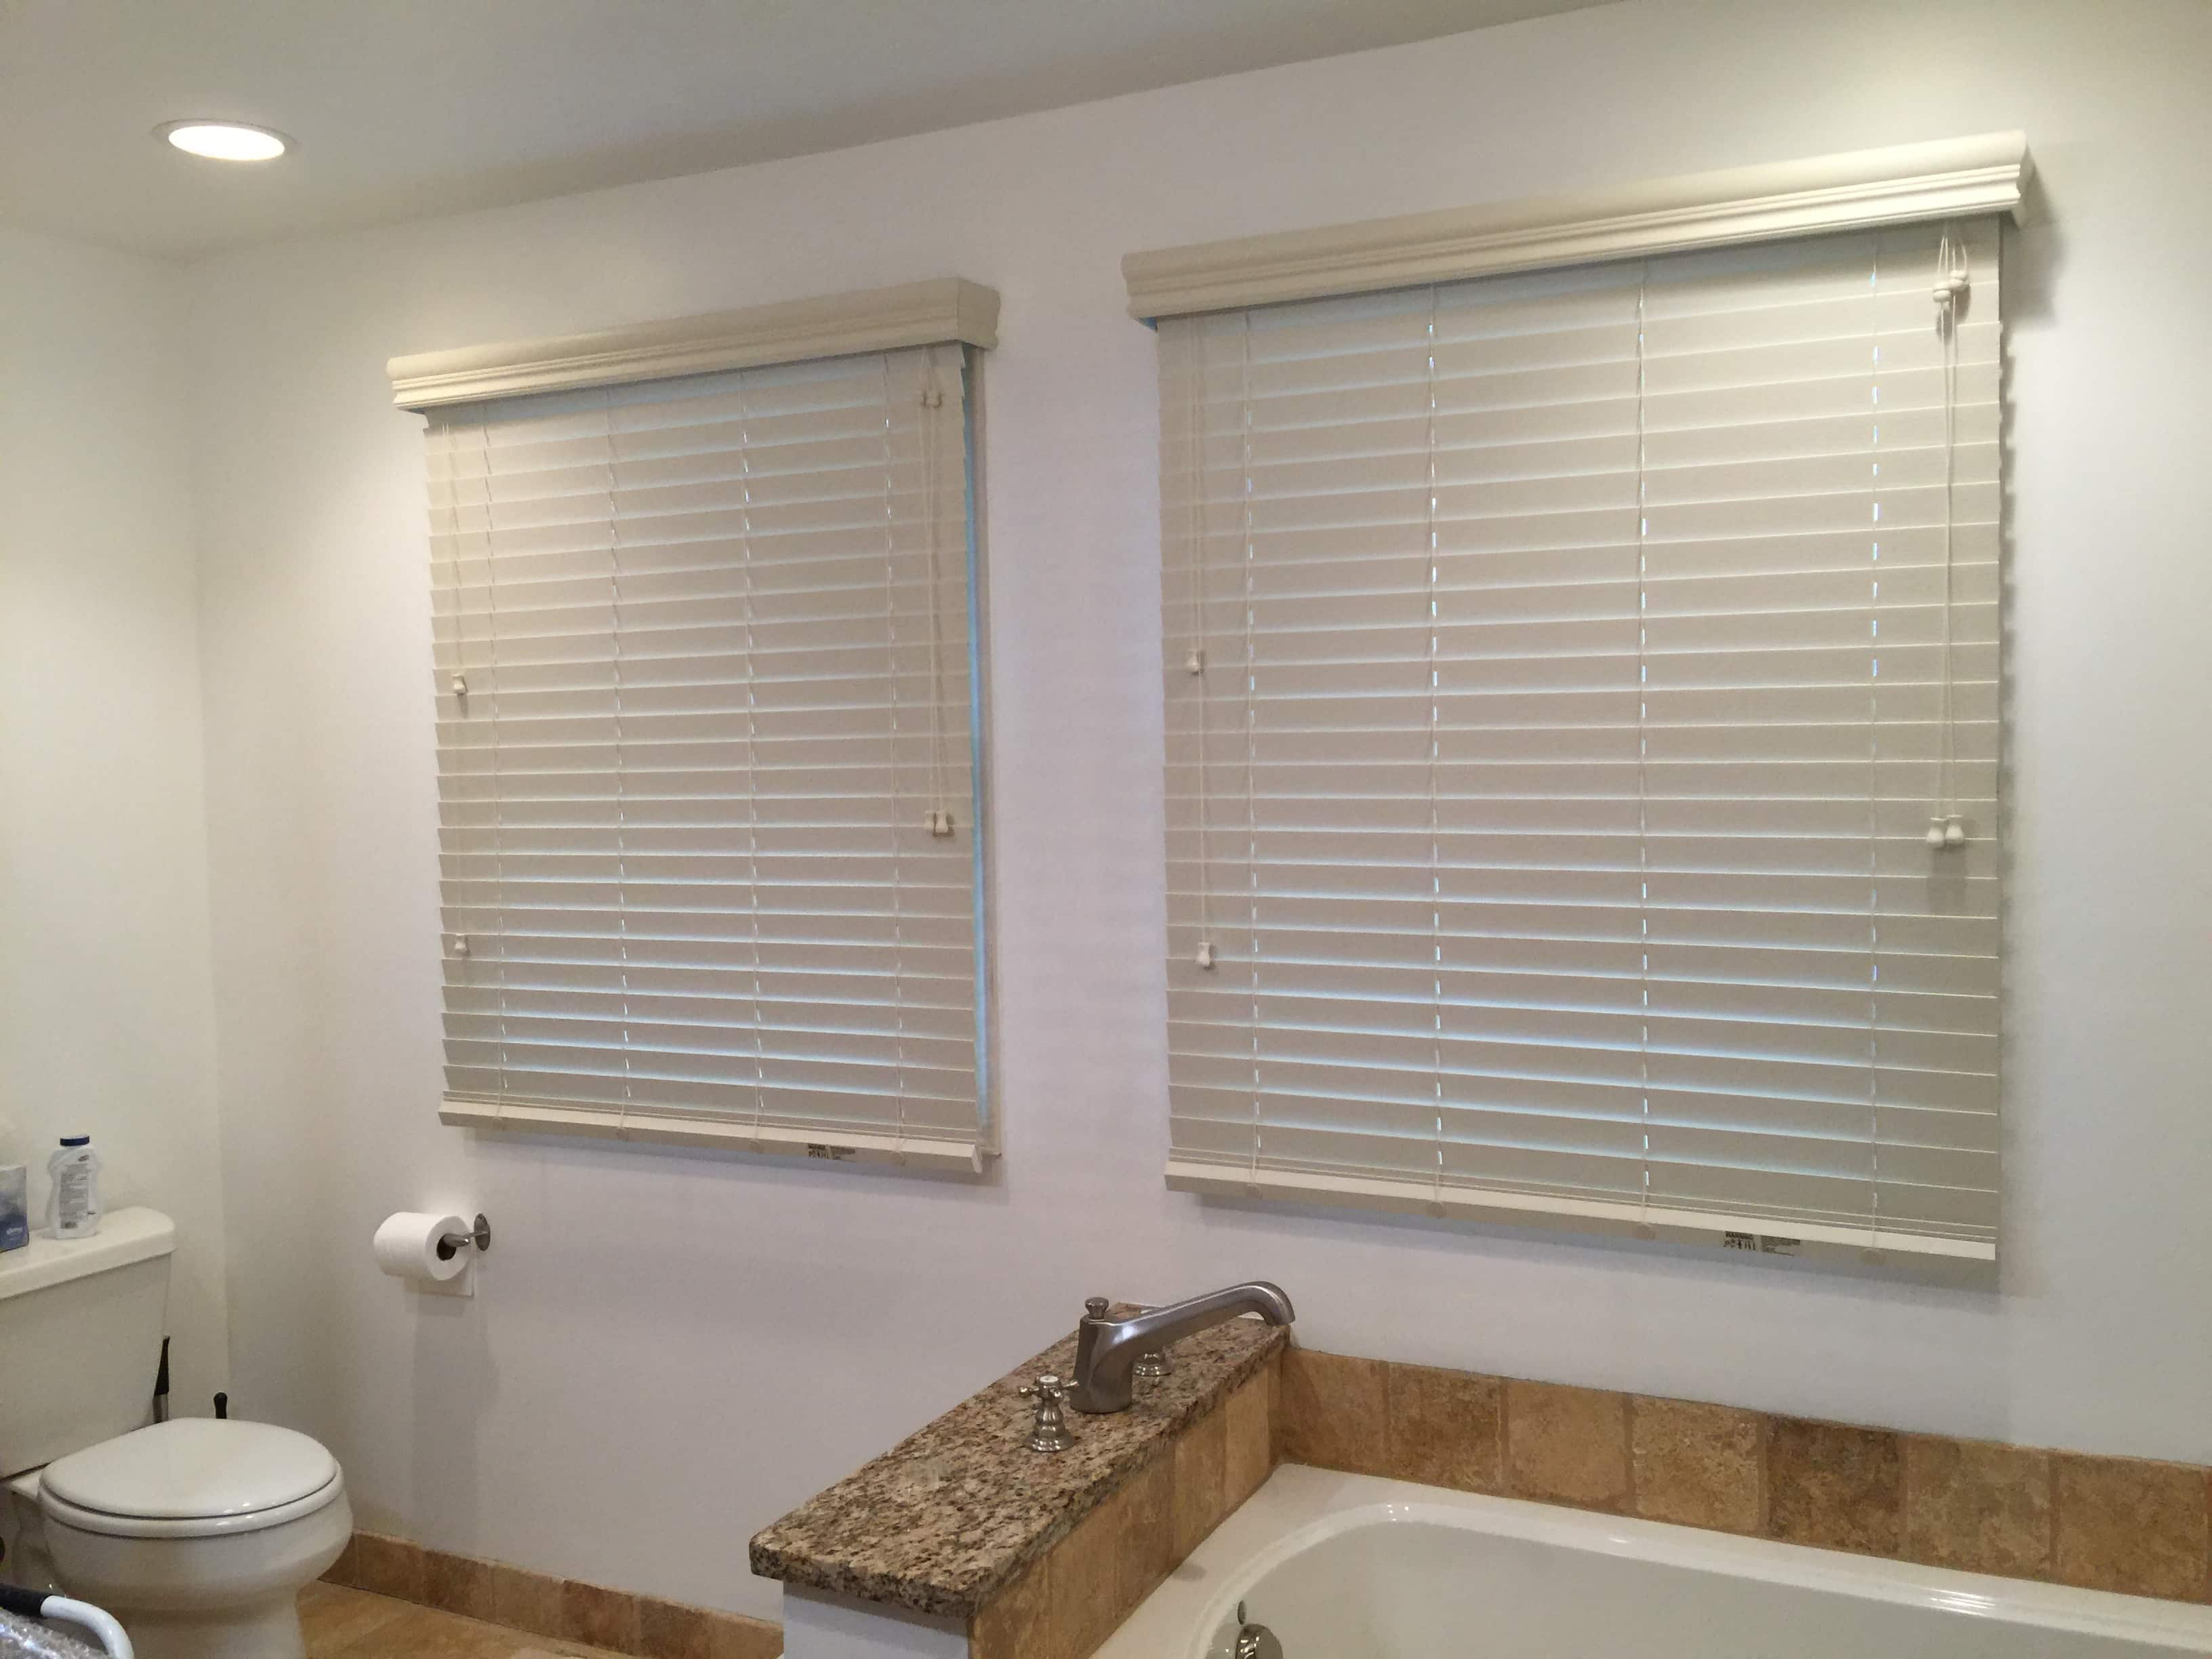 Blinds Block Out Light And Heat